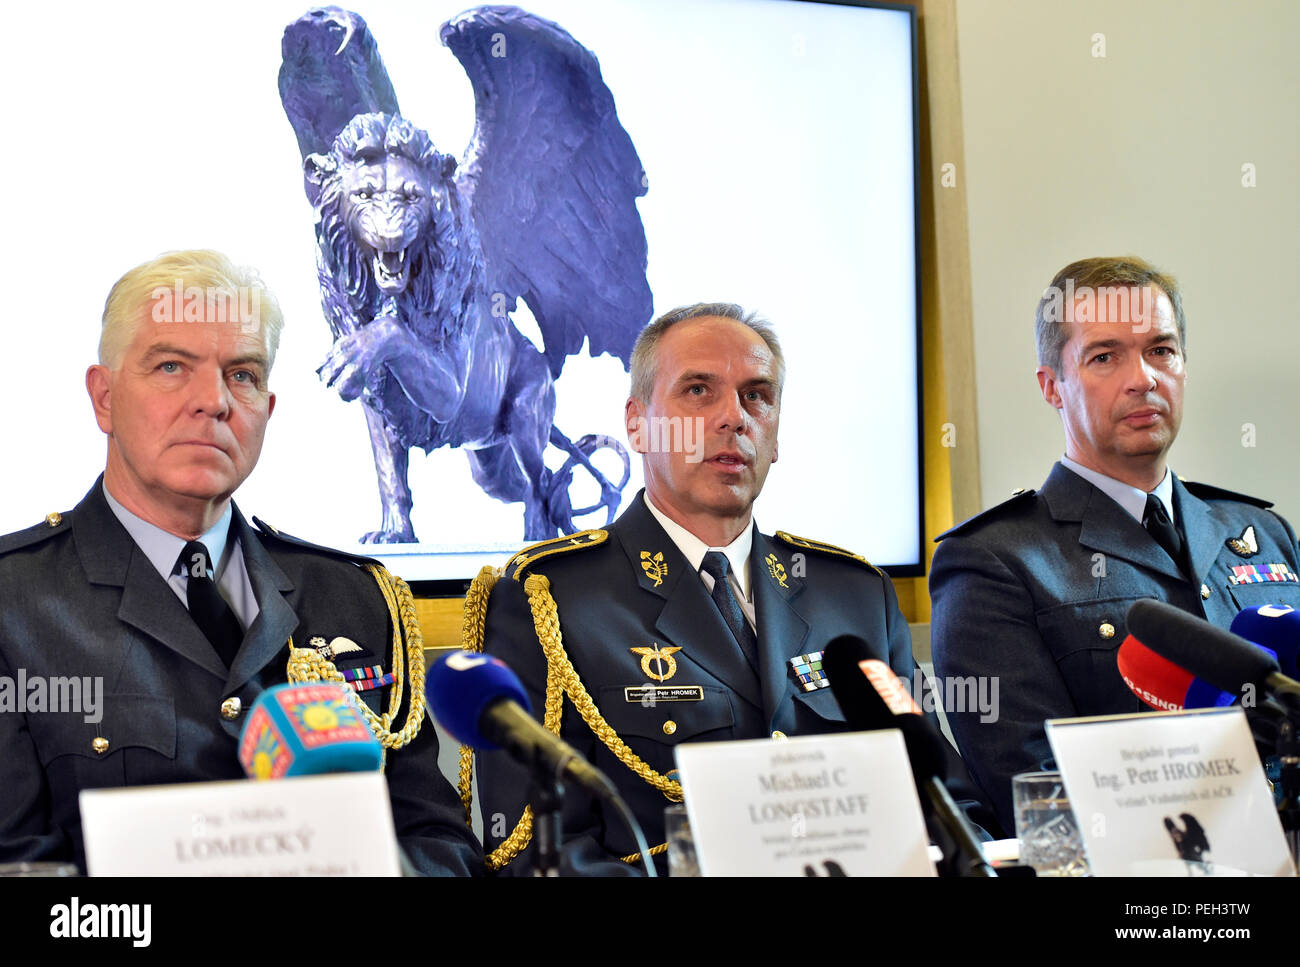 Prague, Czech Republic. 14th Aug, 2018. Military attacha of the British Embassy Michael LongStaff (left), Czech Air Force Commander Petr Hromek (center) and RAF Air Vice Marshal David Cooper (right) speak during a press conference within a meeting marking the upcoming 100th anniversary of the birth of the Czechoslovak air force and commemorating heroism of its WWII pilots took place in Prague, Czech Republic, on August 18, 2018, attended by Czech politicians and representatives of the military, NATO and the British RAF. Credit: Roman Vondrous/CTK Photo/Alamy Live News - Stock Image